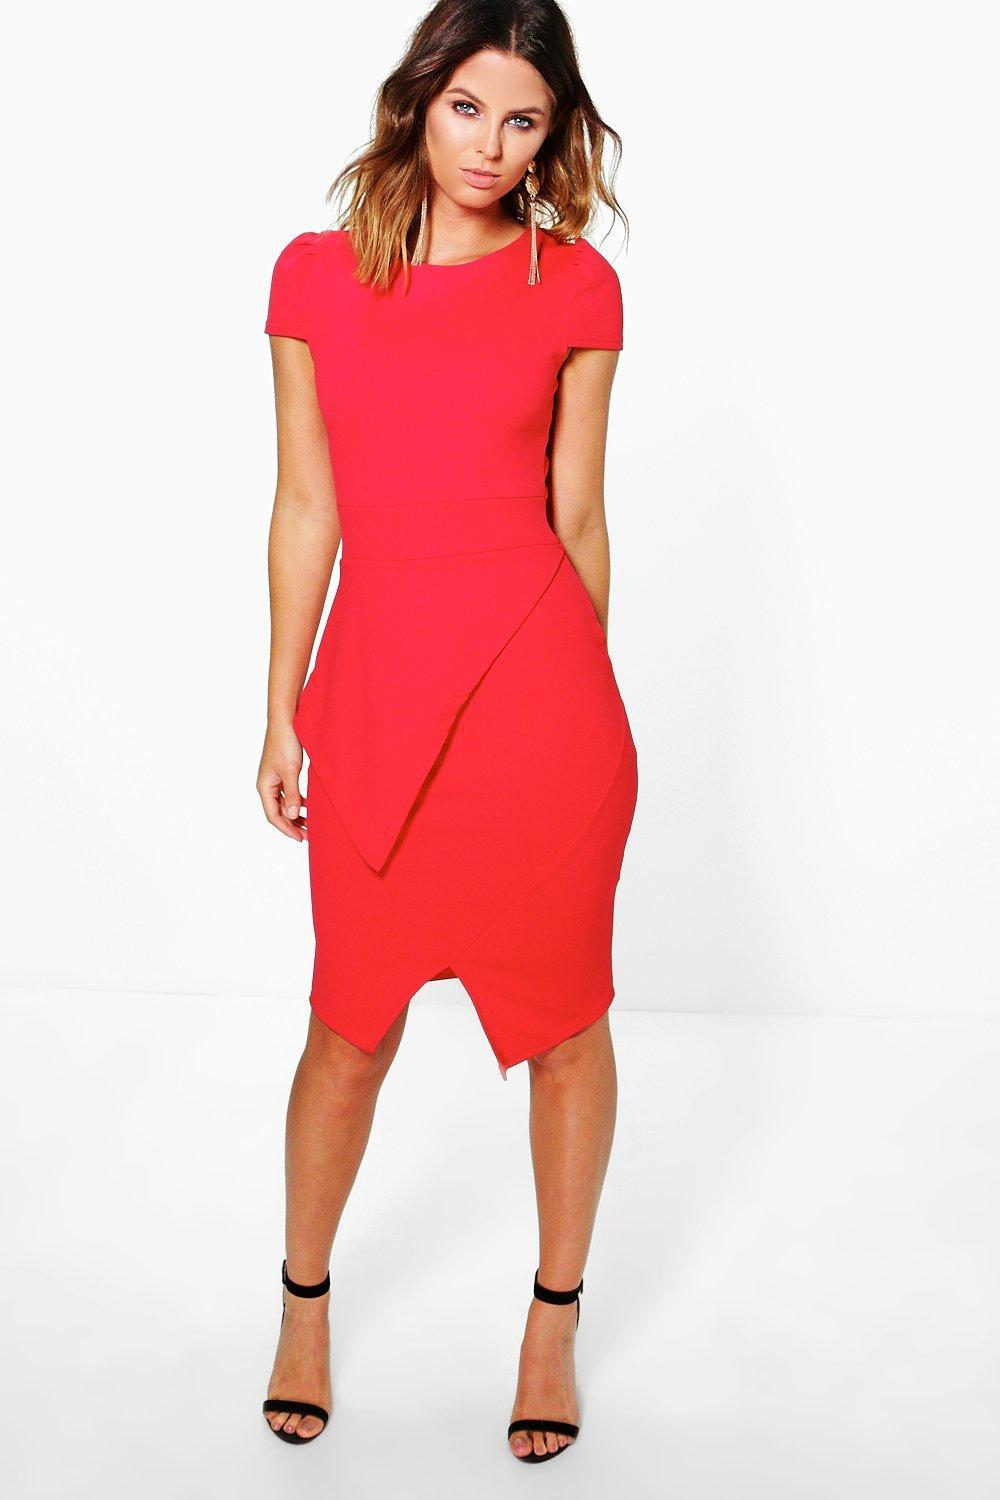 Wrap Skirt Bodycon Dress Red - fit: tight; pattern: plain; style: bodycon; predominant colour: true red; occasions: evening; length: on the knee; fibres: polyester/polyamide - stretch; neckline: crew; sleeve length: short sleeve; sleeve style: standard; texture group: jersey - clingy; pattern type: fabric; season: s/s 2016; wardrobe: event